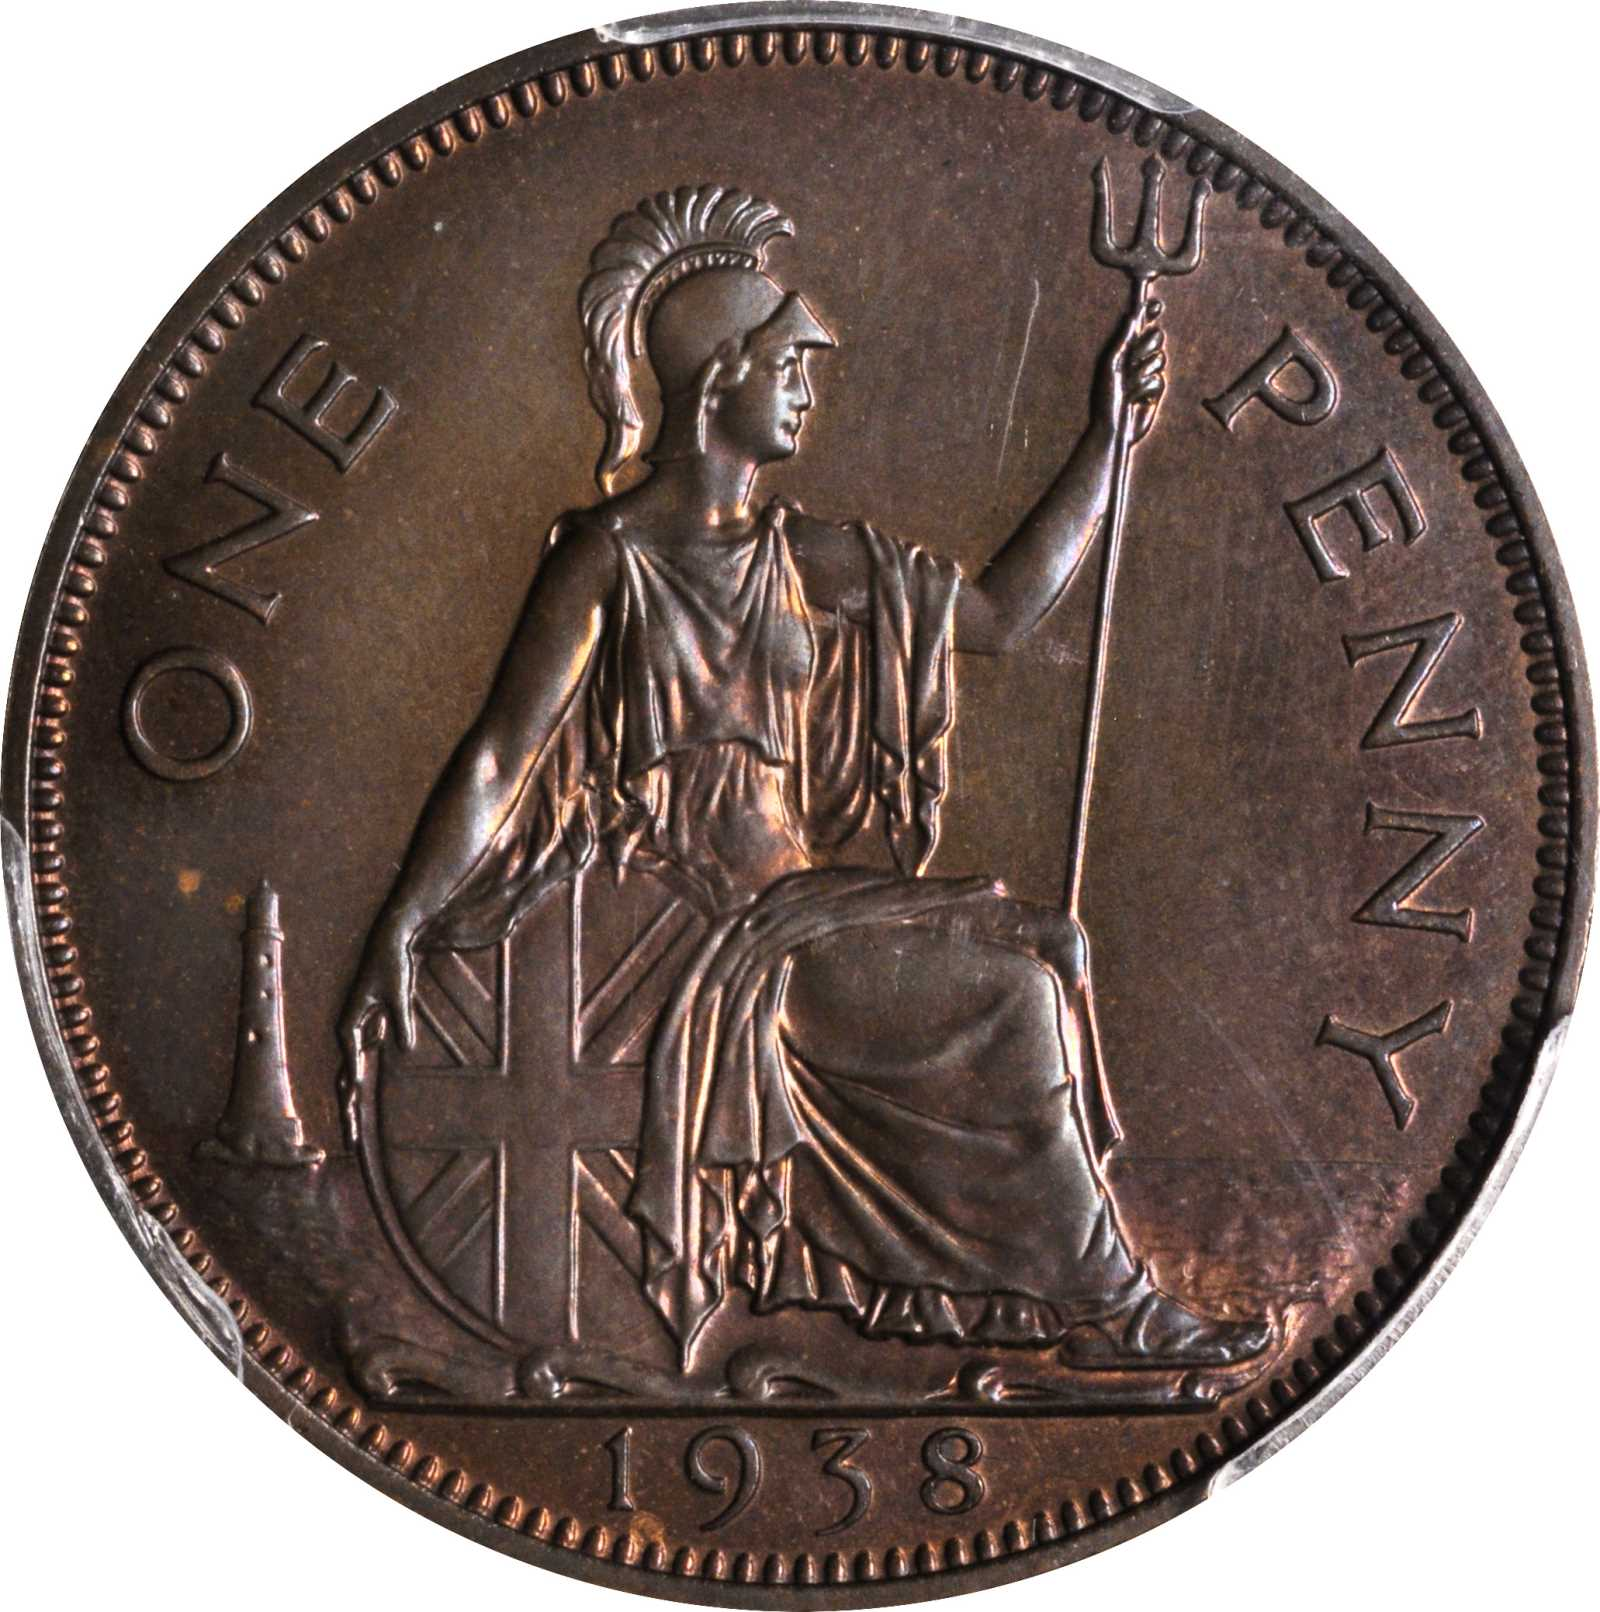 Penny (Pre-decimal): Photo Great Britain 1938 penny